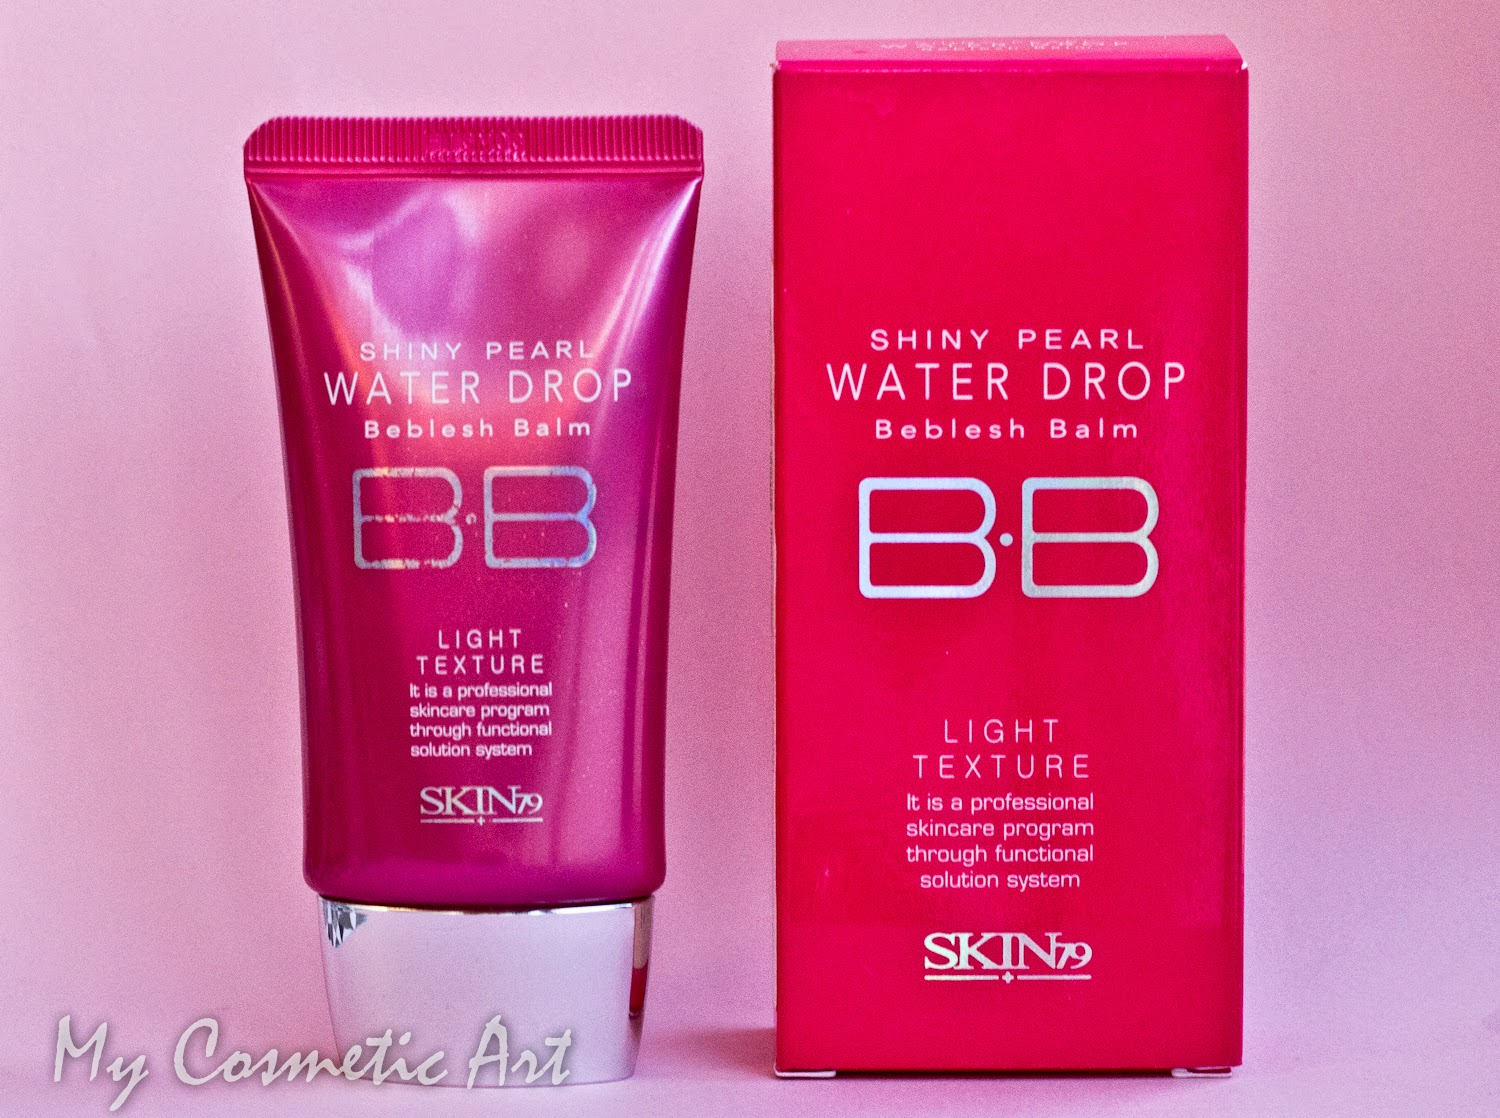 Shiny Pearl Water Drop Beblesh Balm Skin79